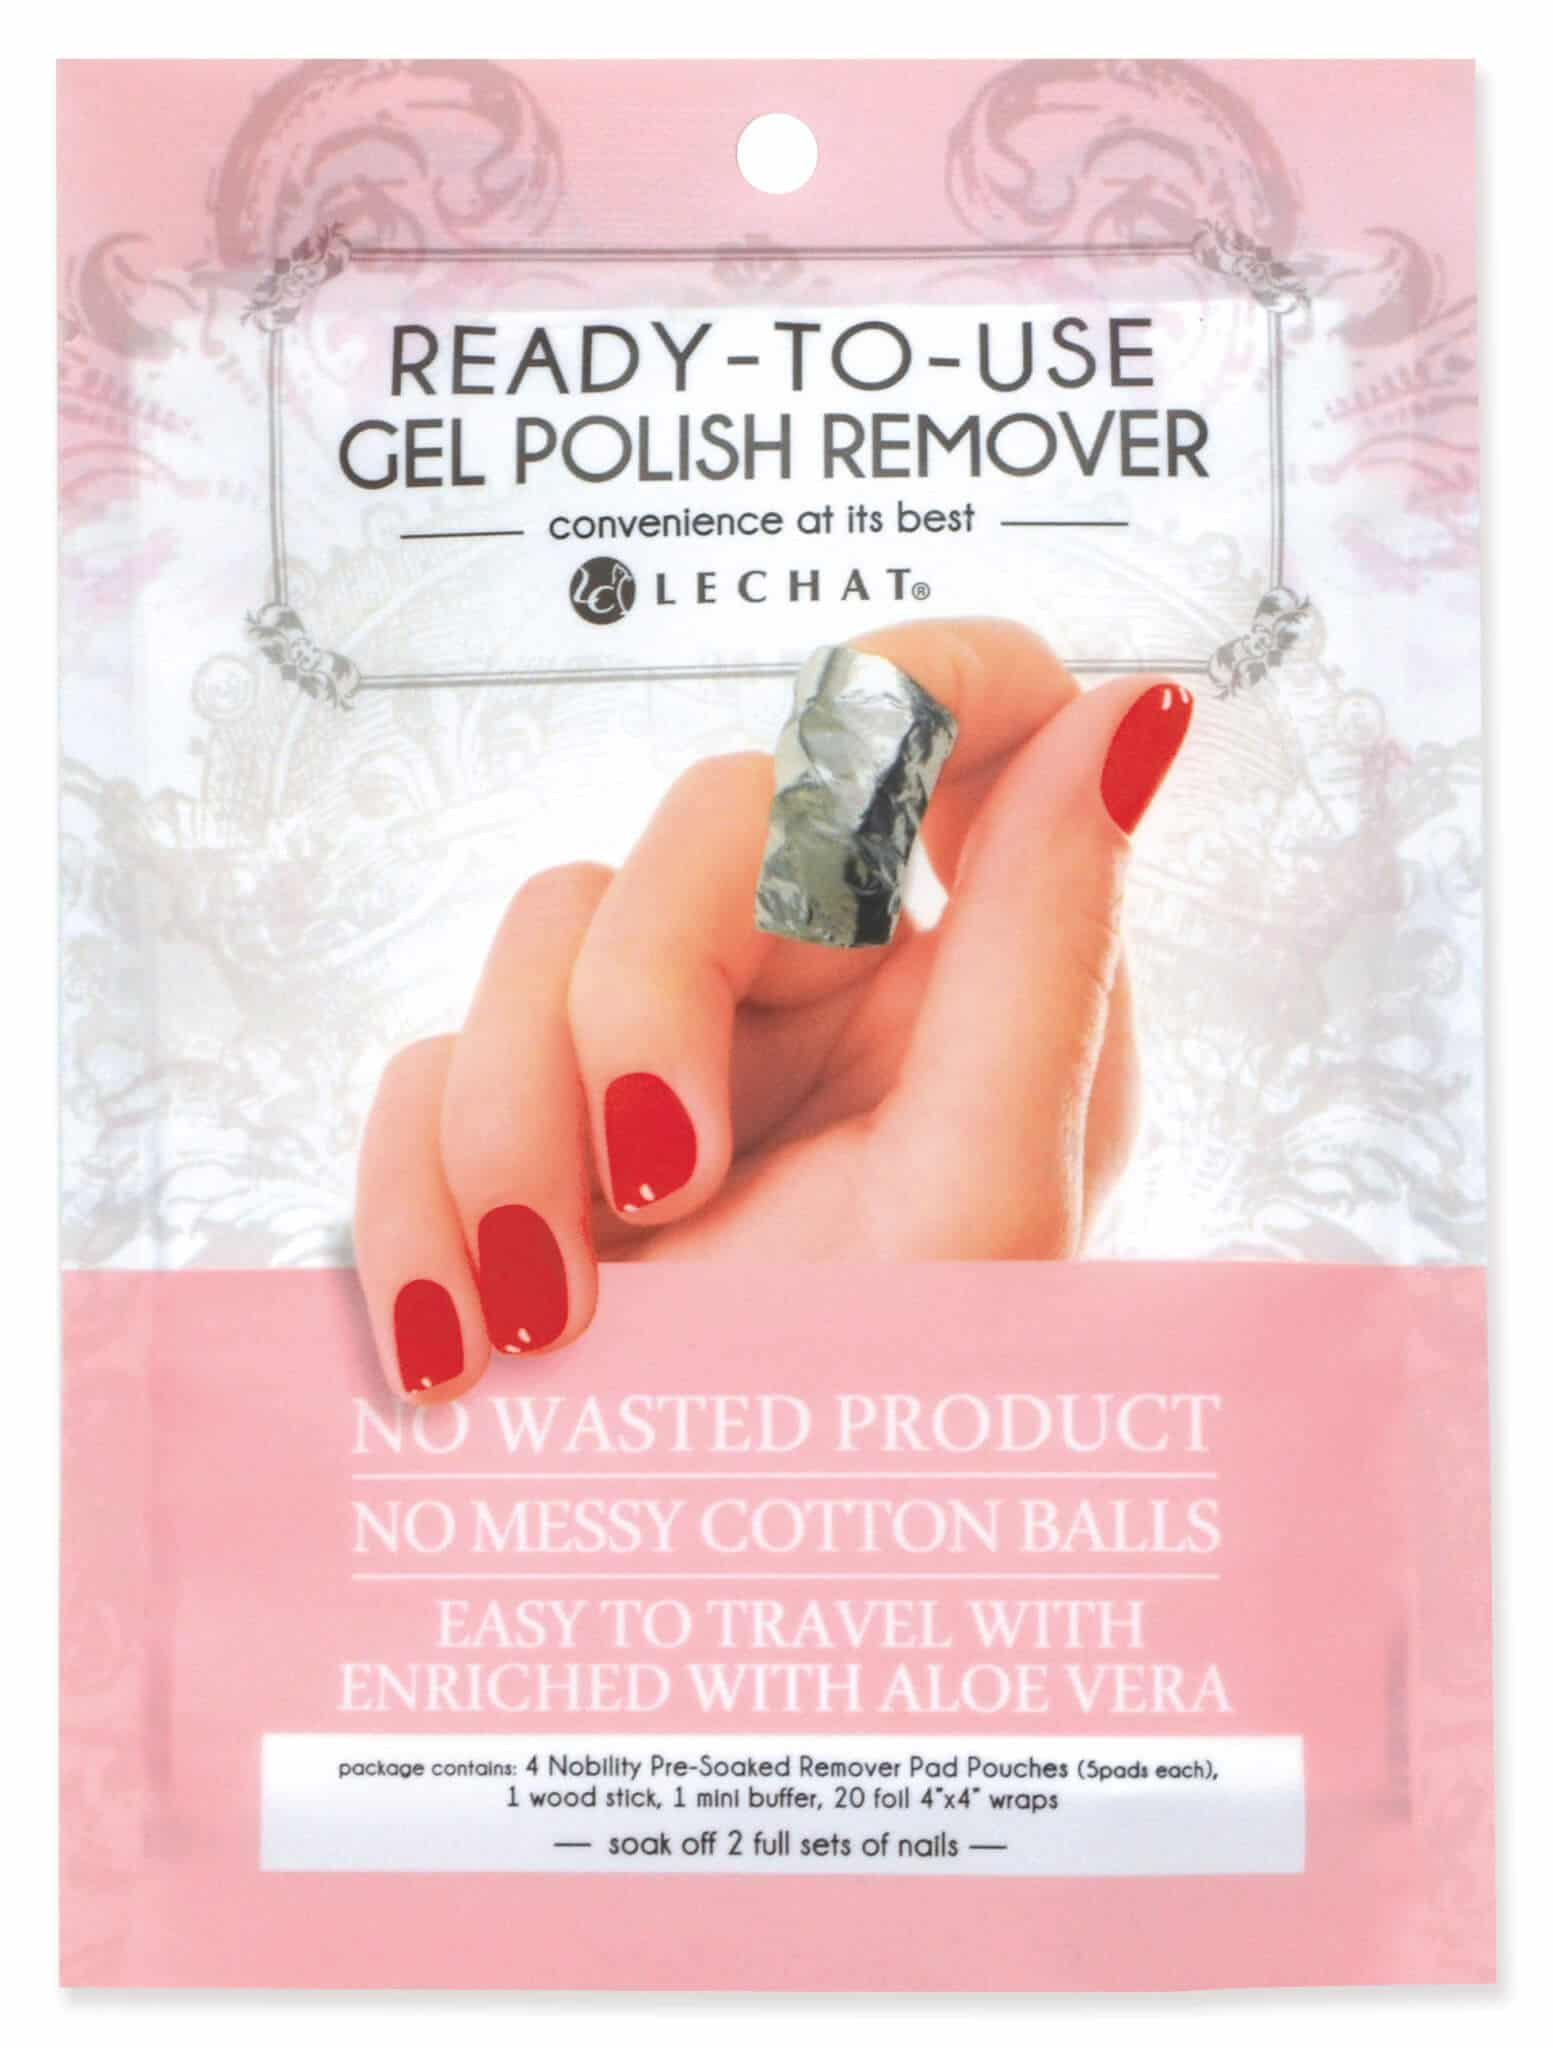 Nobility - Ready-To-Use Gel Polish Remover Pads Kit | LeChat Nails